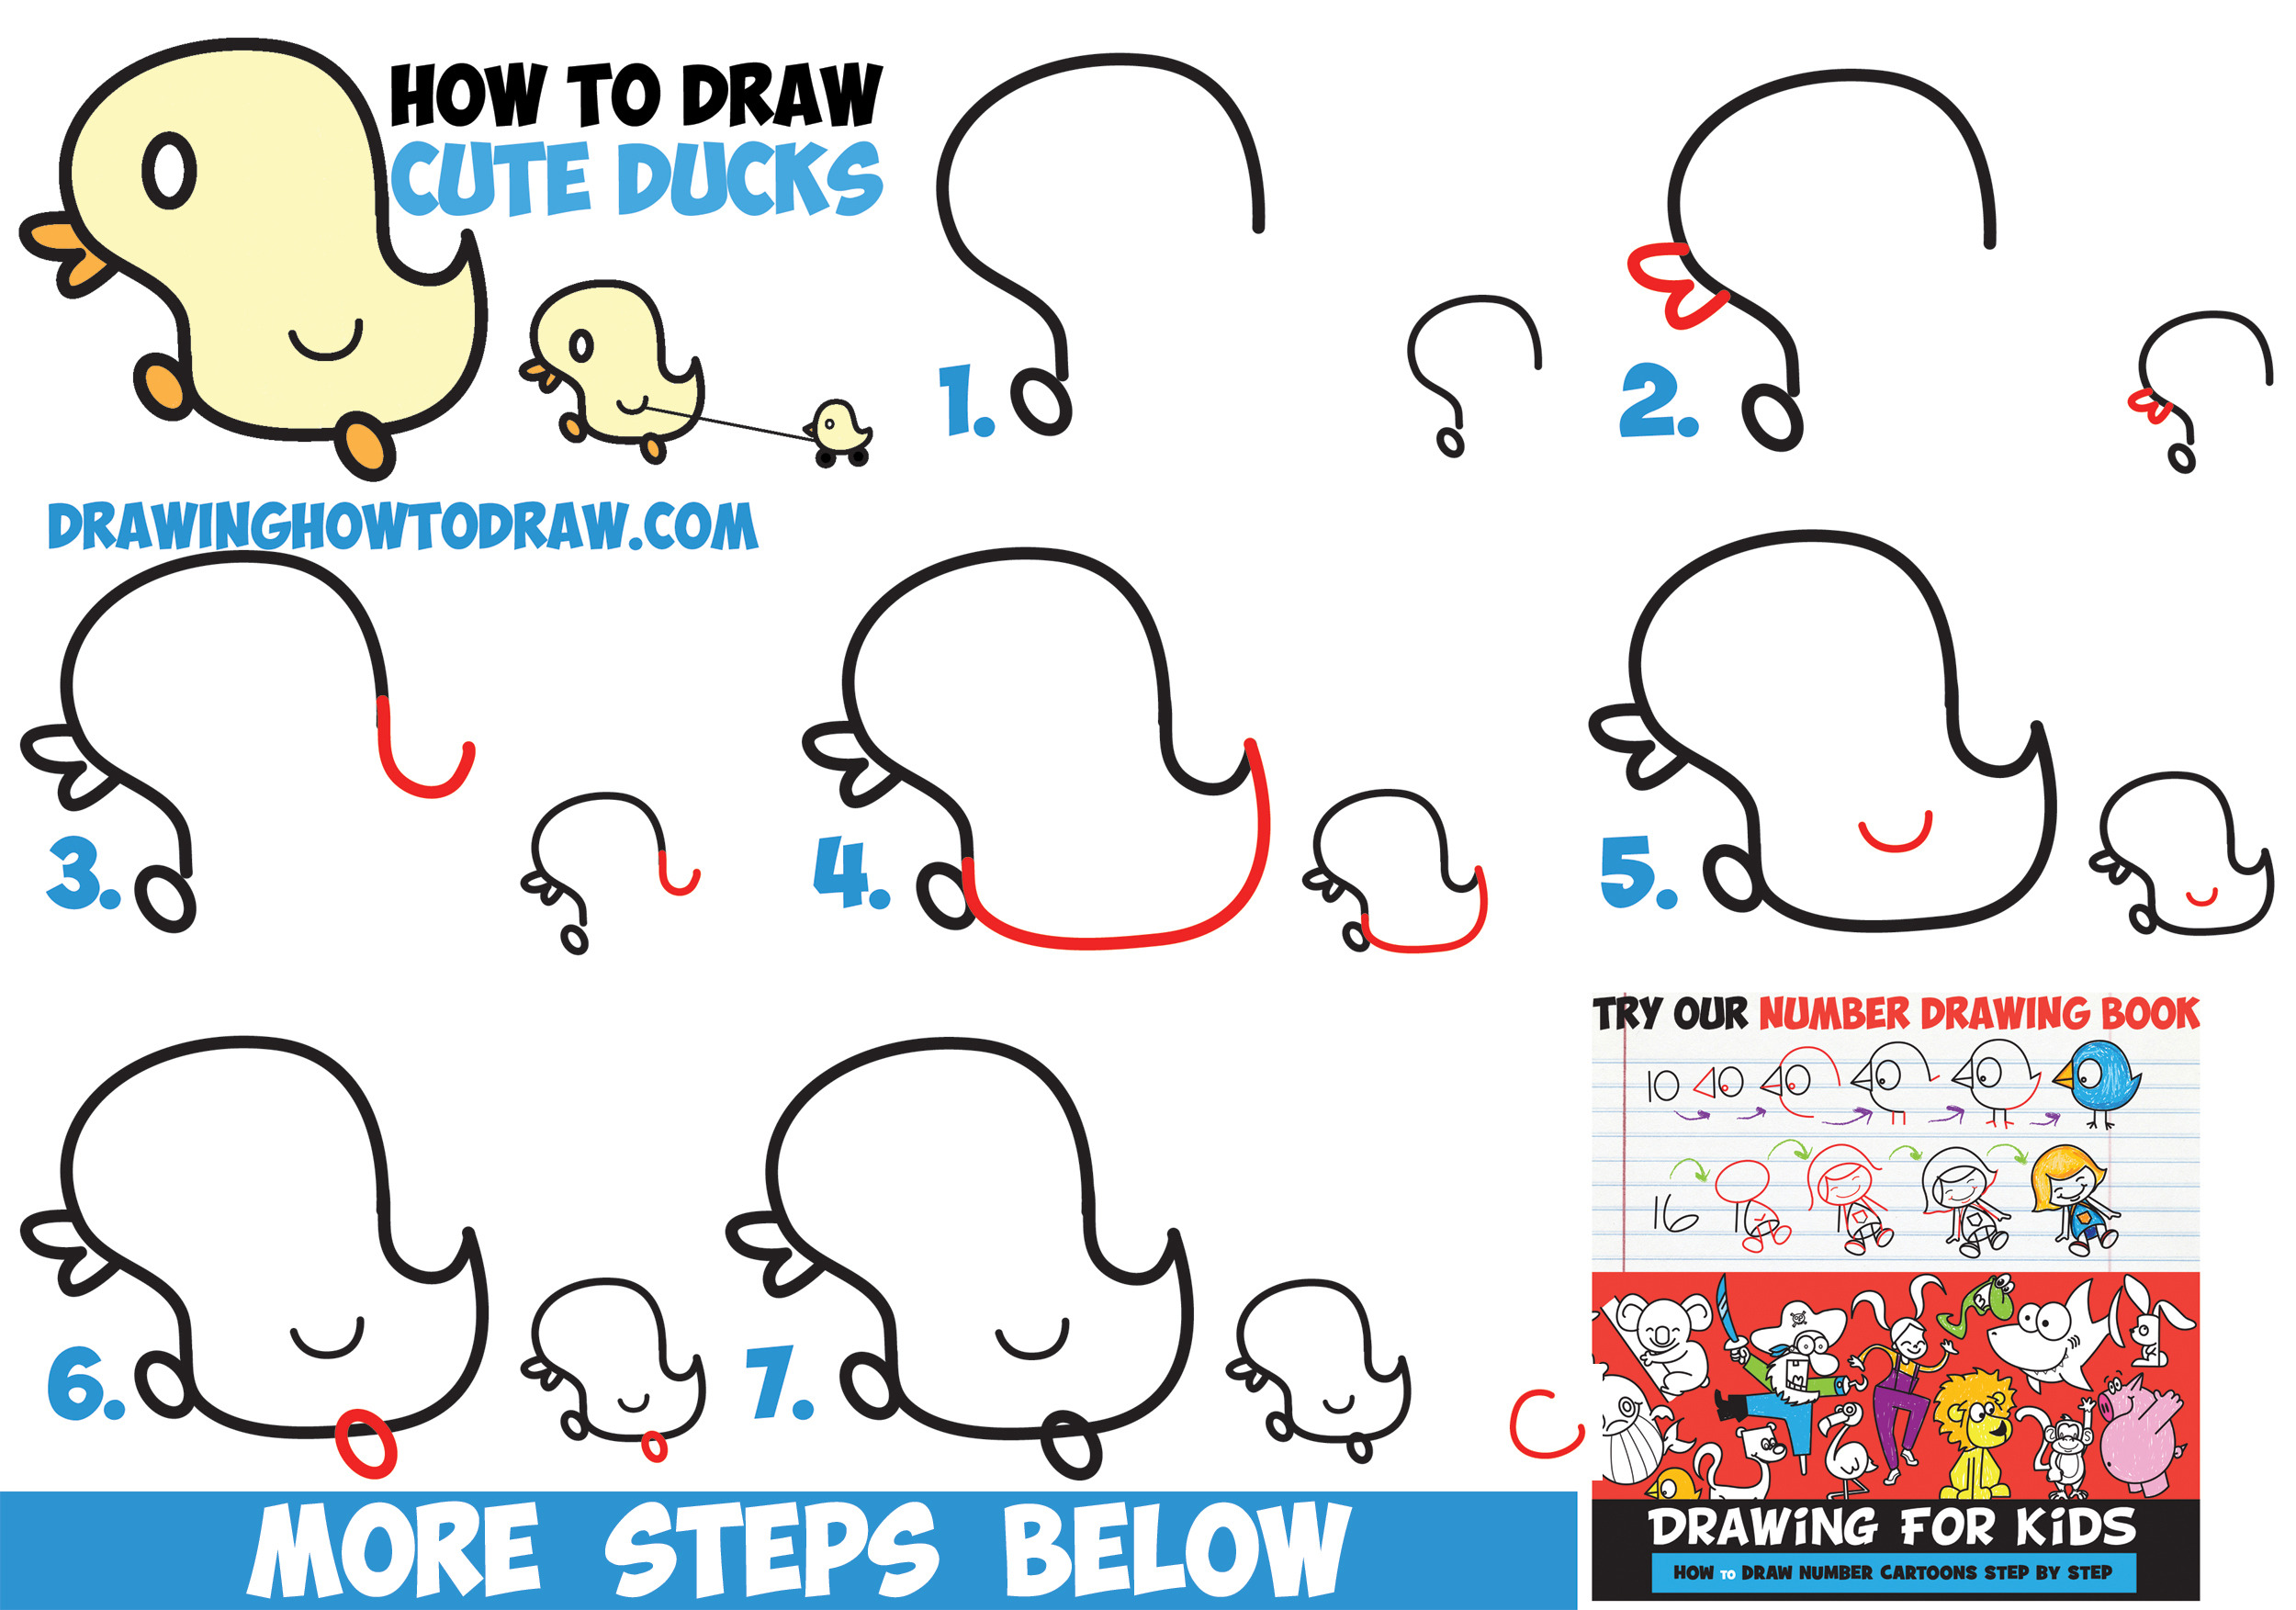 How to Draw Cute Kawaii Baby Ducks / Cartoon Ducklings in Easy Step by Step Drawing Tutorial for Kids